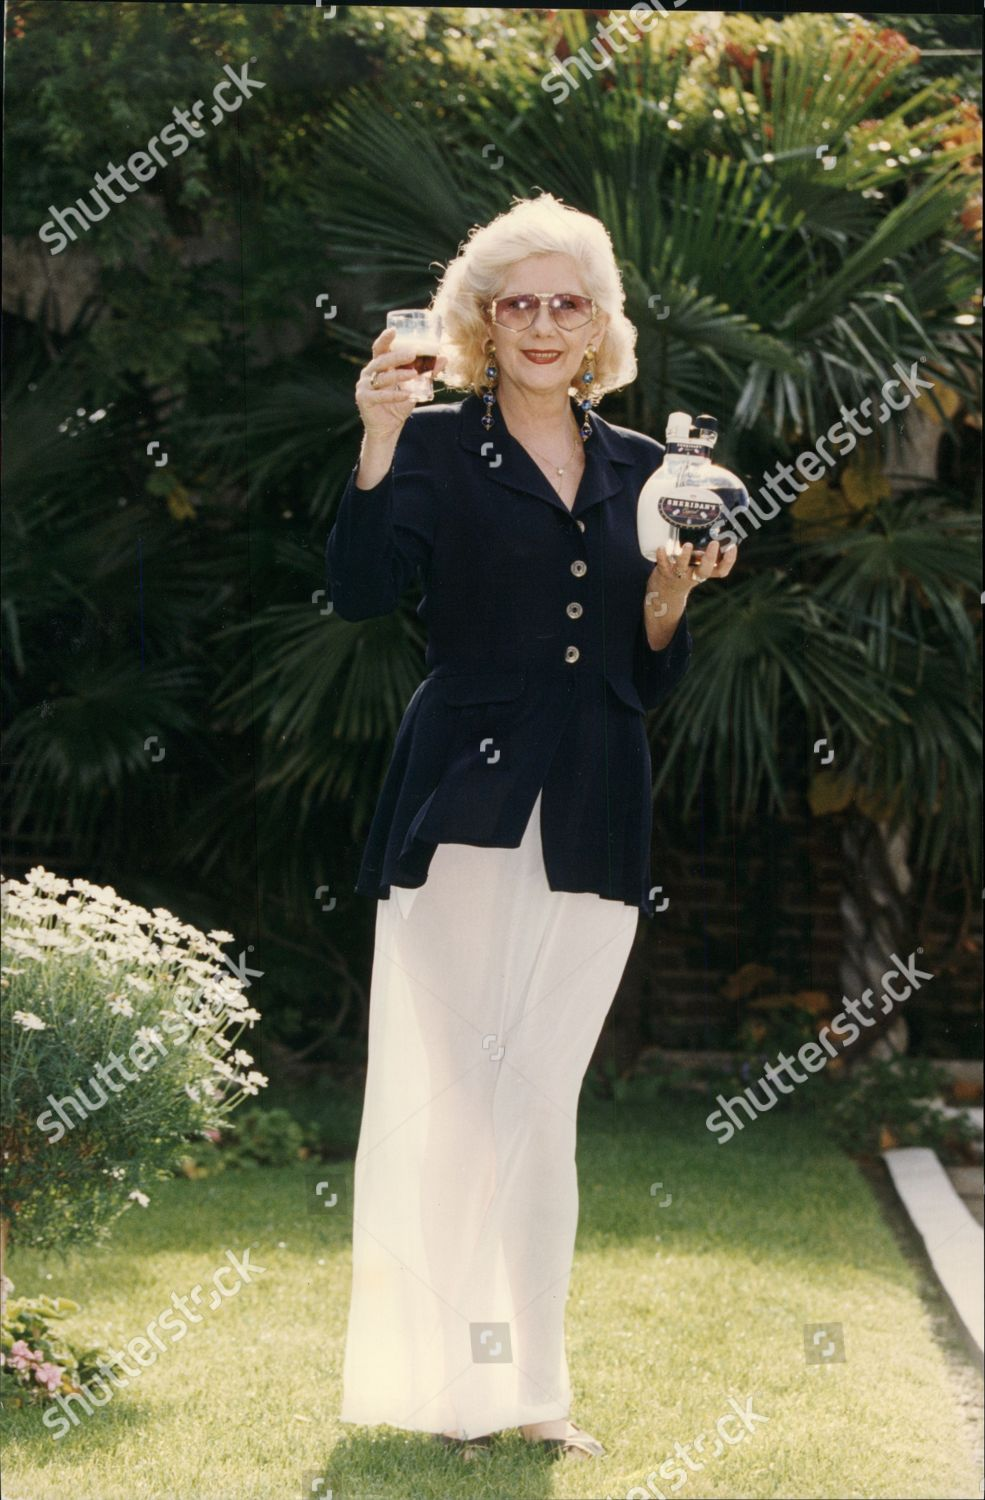 Mildred Coles (actress) Mildred Coles (actress) new photo